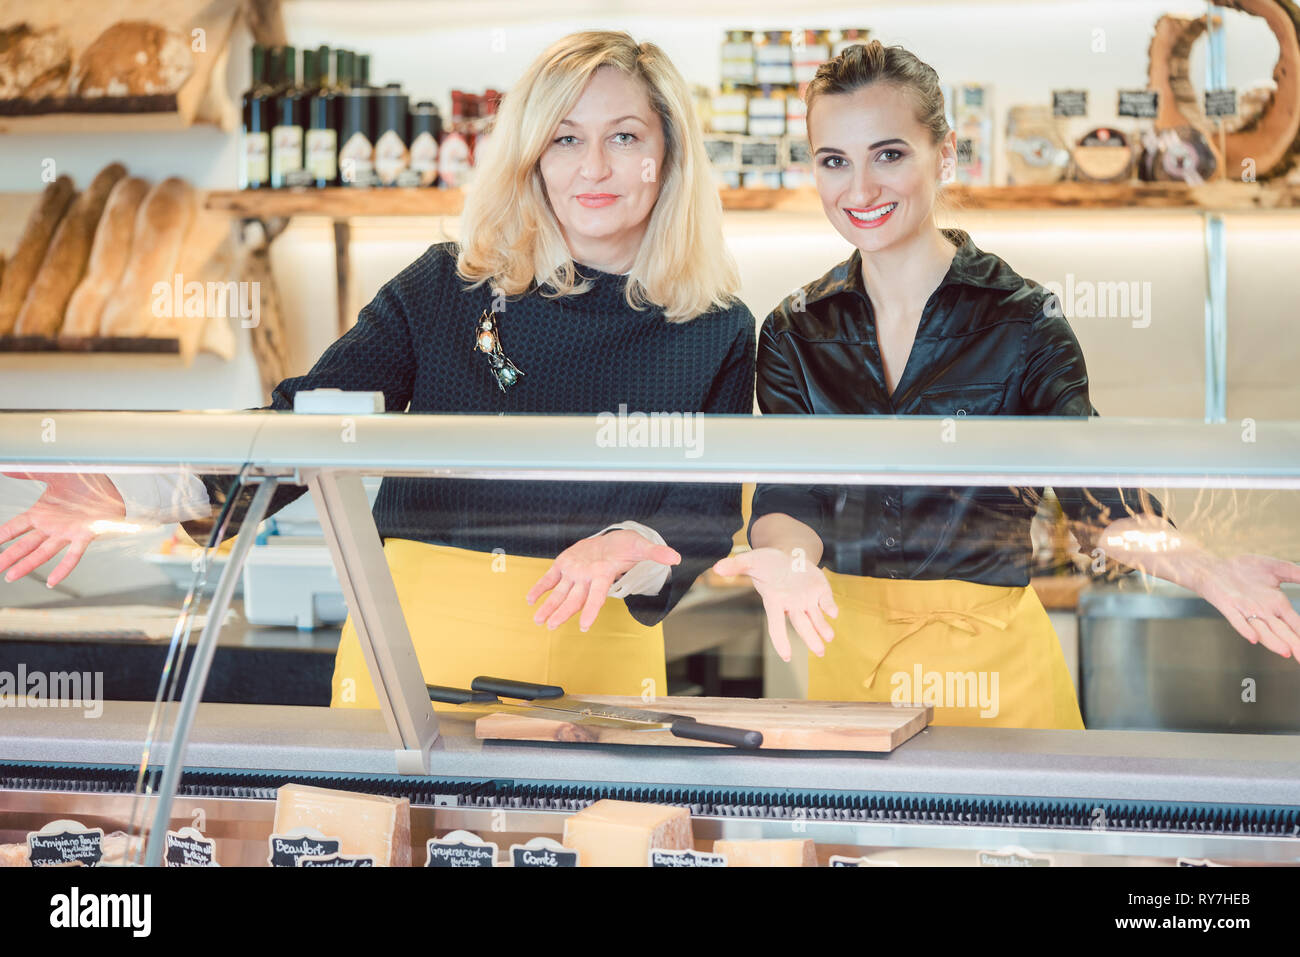 Two salesladies at the cheese counter offering their goods - Stock Image